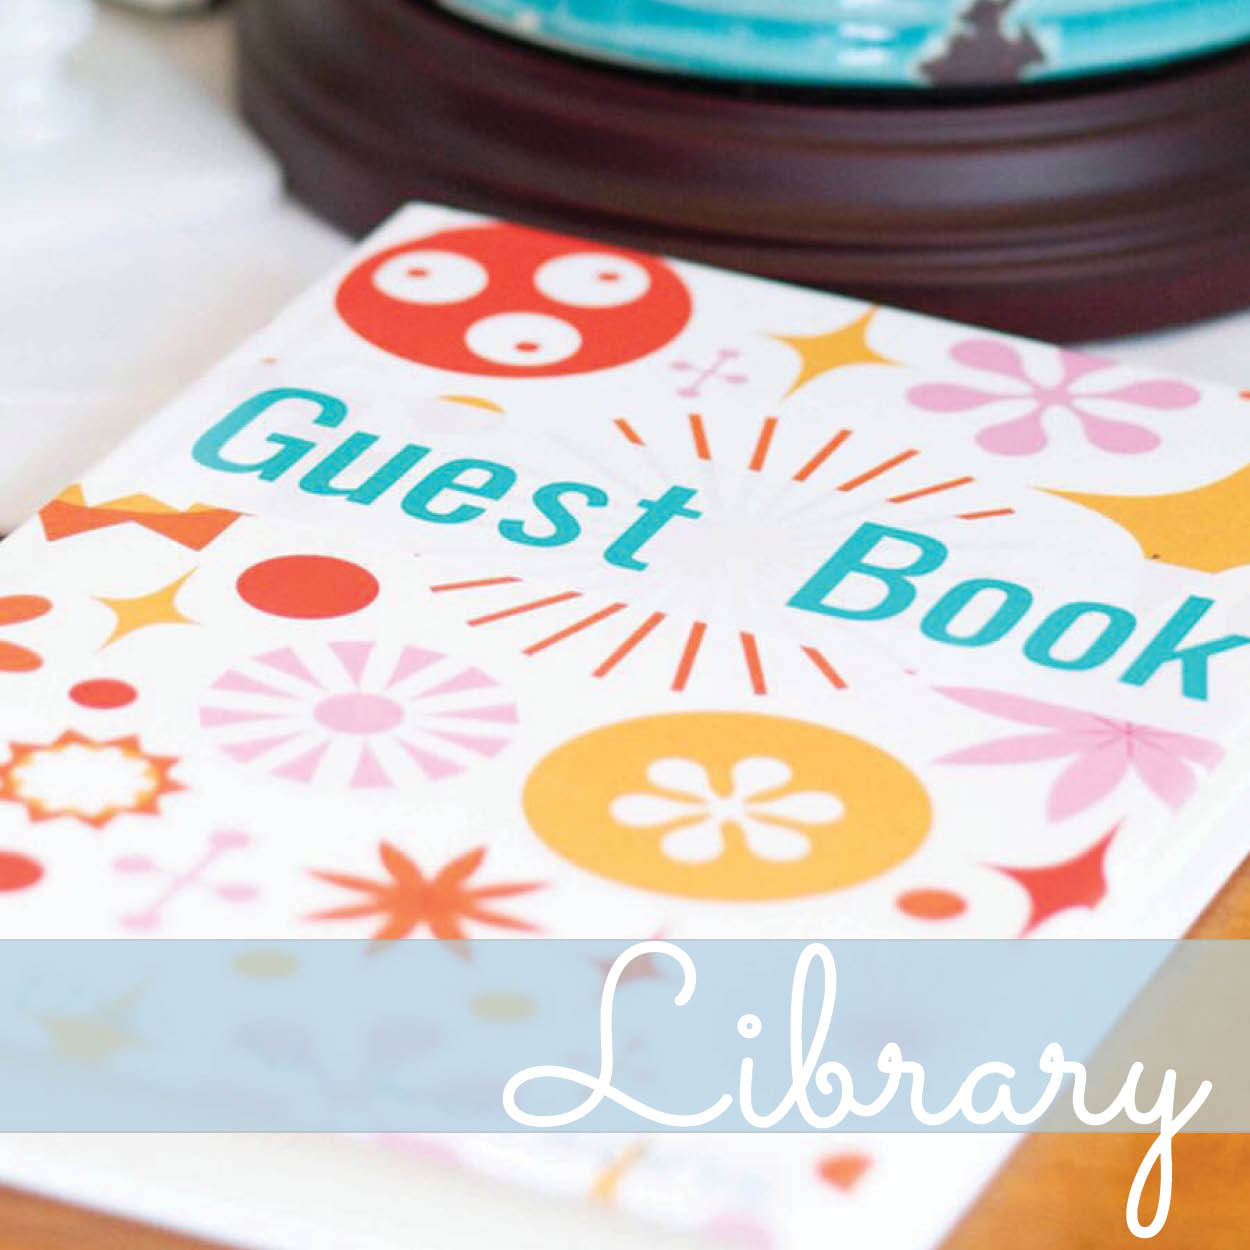 Whether you are planning a party, hosting guests, or looking for organizational tips at home, the Mid Modern Mama Library is full of resources to help. With craft projects (including for Cricut & Silhouette), budget planners, calendars, to do lists, kids ideas, and design inspiration, this library has something for everyone. Includes DIY, planner, freebies, spring, summer, fall, winter, Christmas.